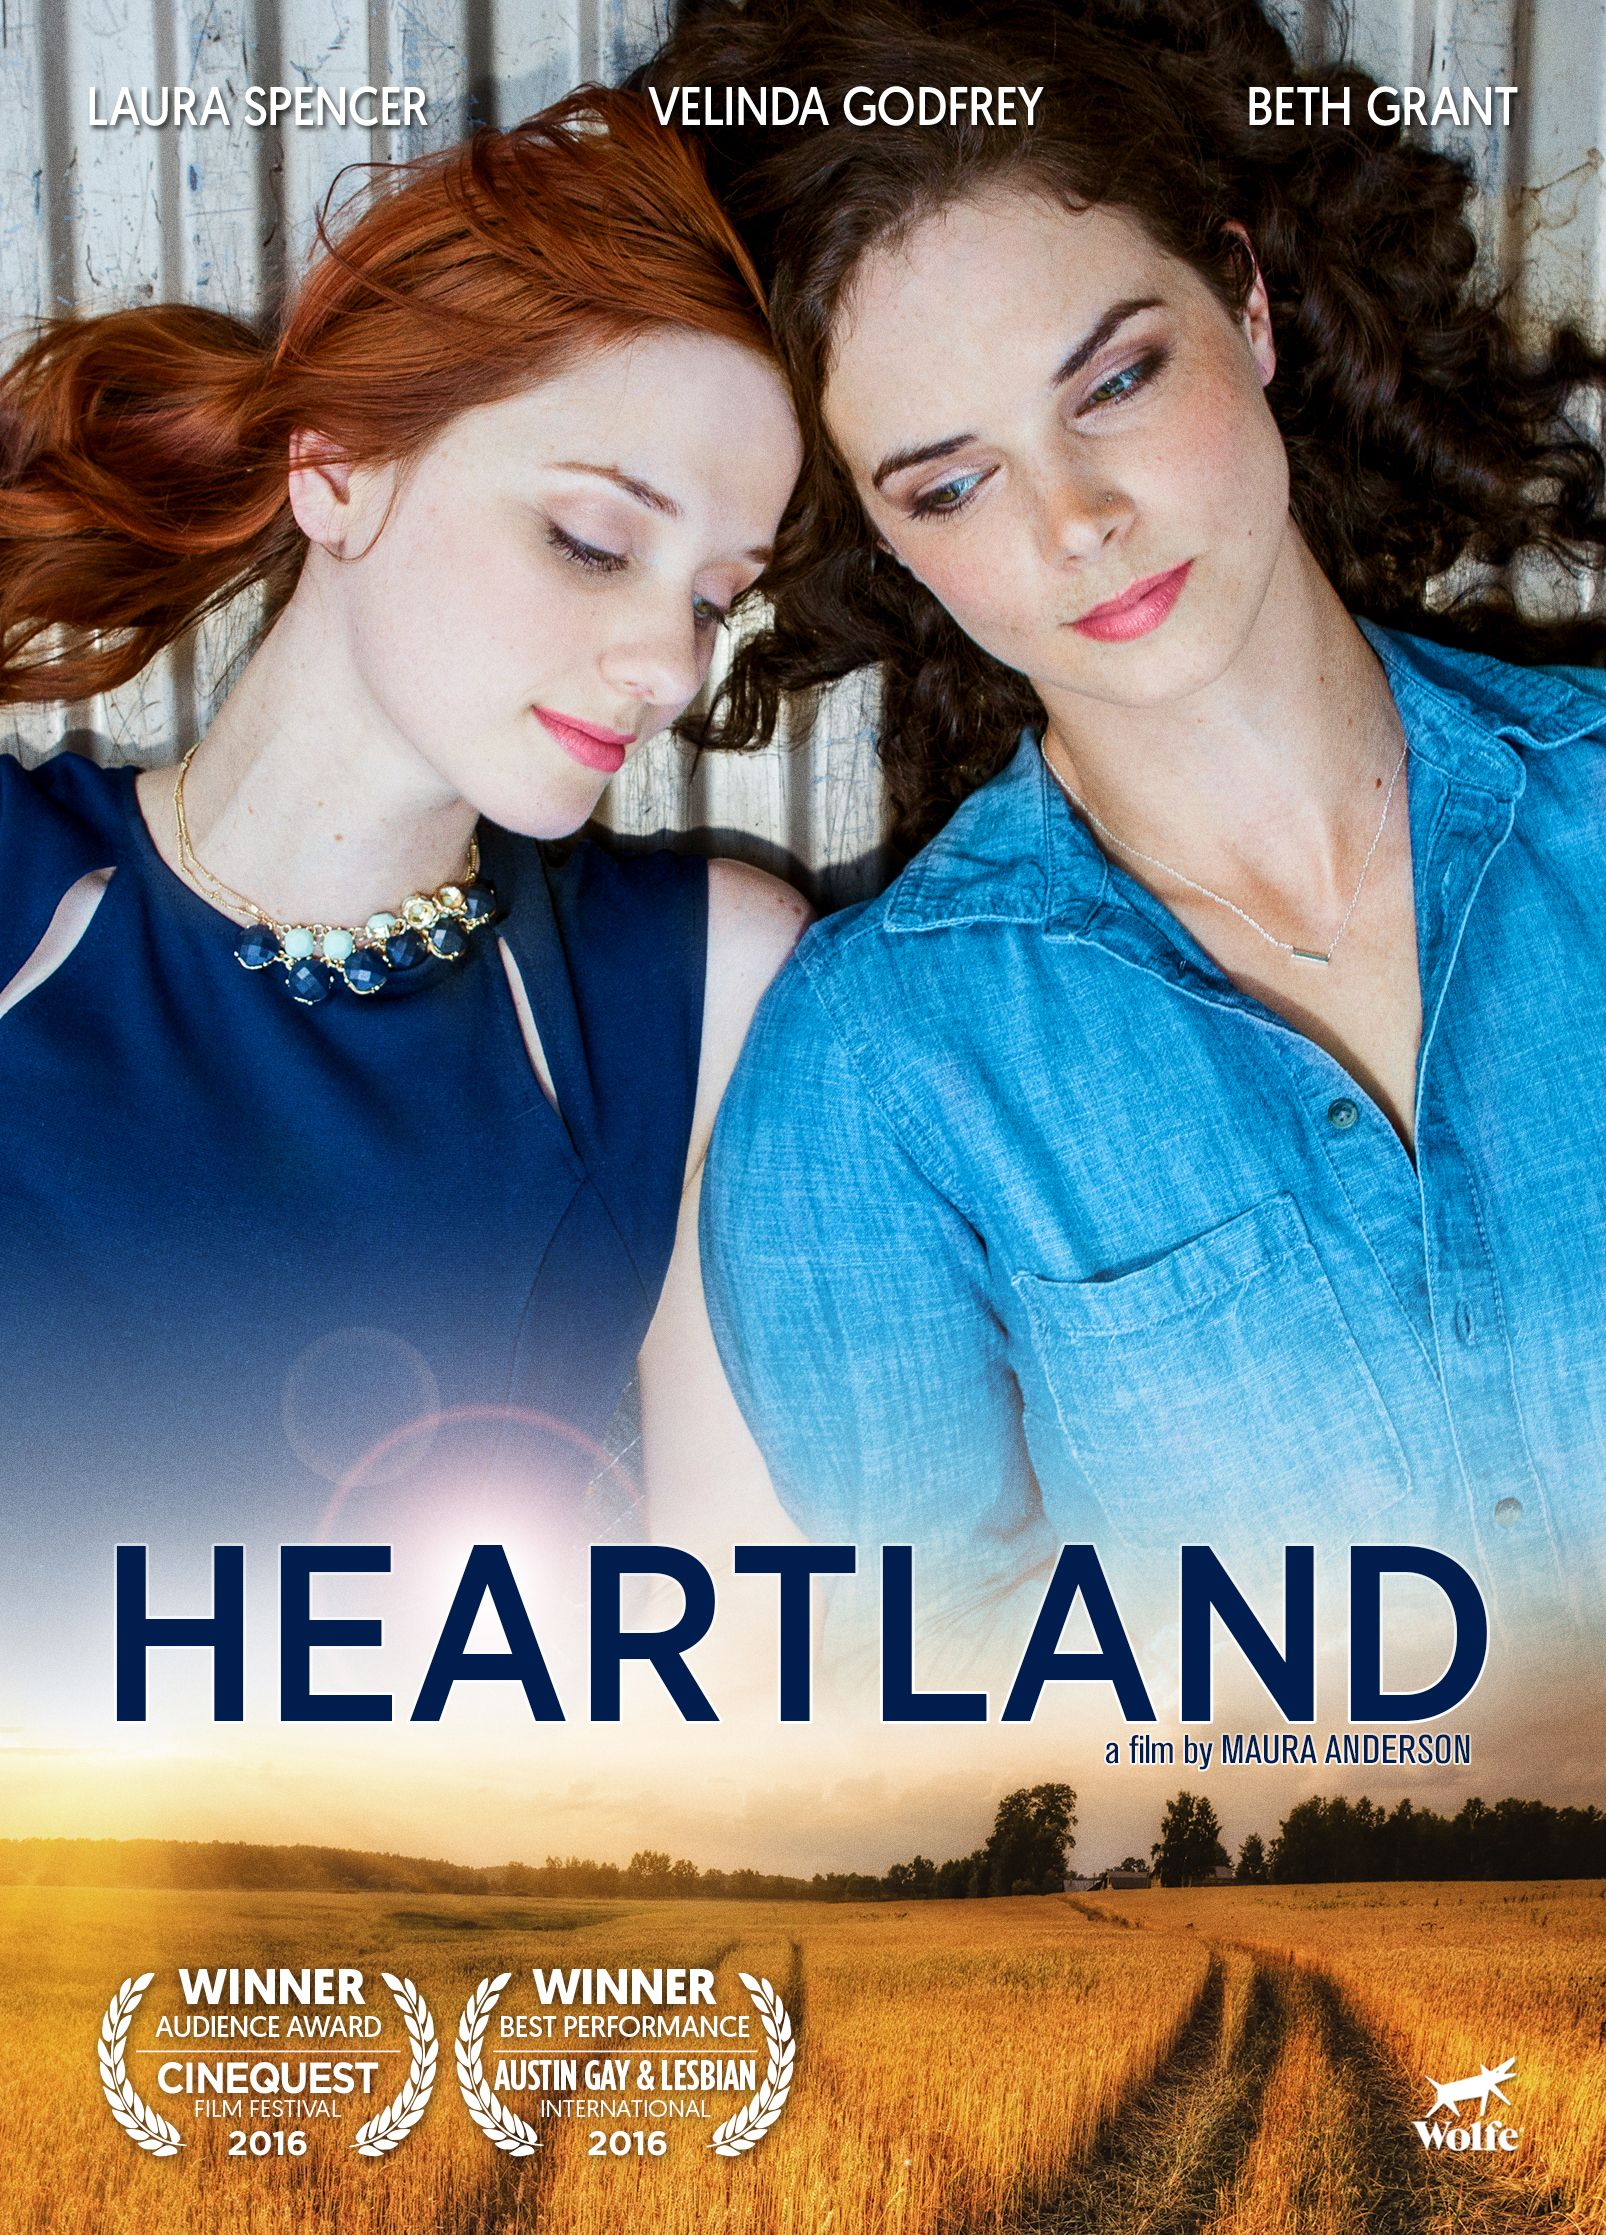 Des Films En Streaming Heartland On Dvd In 2019 Lesbian Movies Film